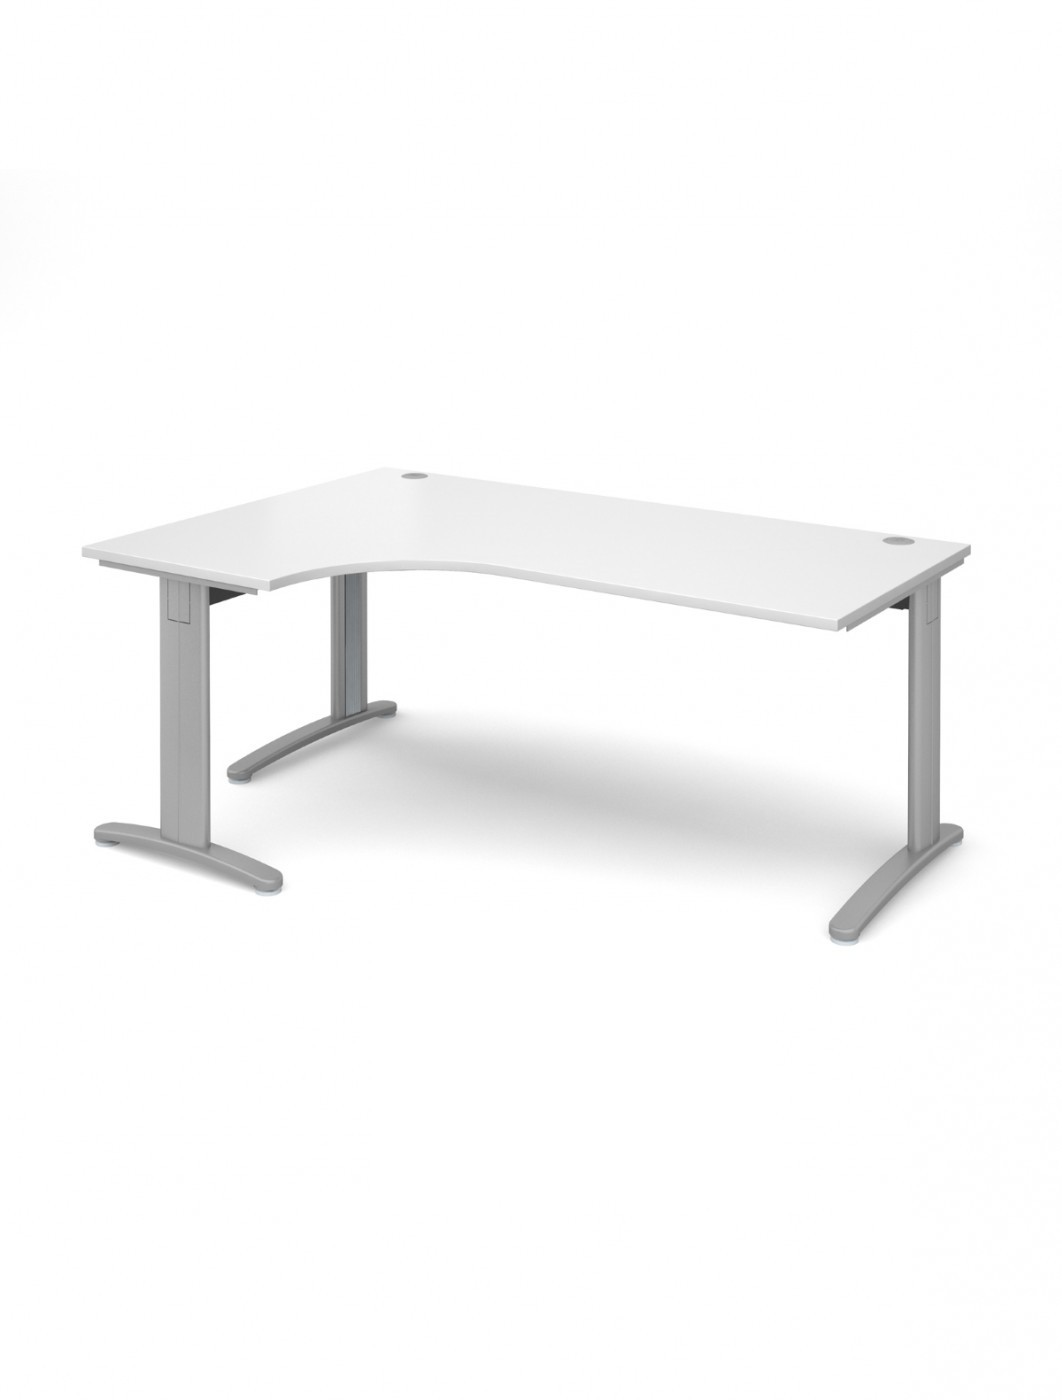 Peachy White Office Desk 1800Mm Dams Tr10 Left Hand Ergo Deluxe Tdel18Wh Home Interior And Landscaping Pimpapssignezvosmurscom